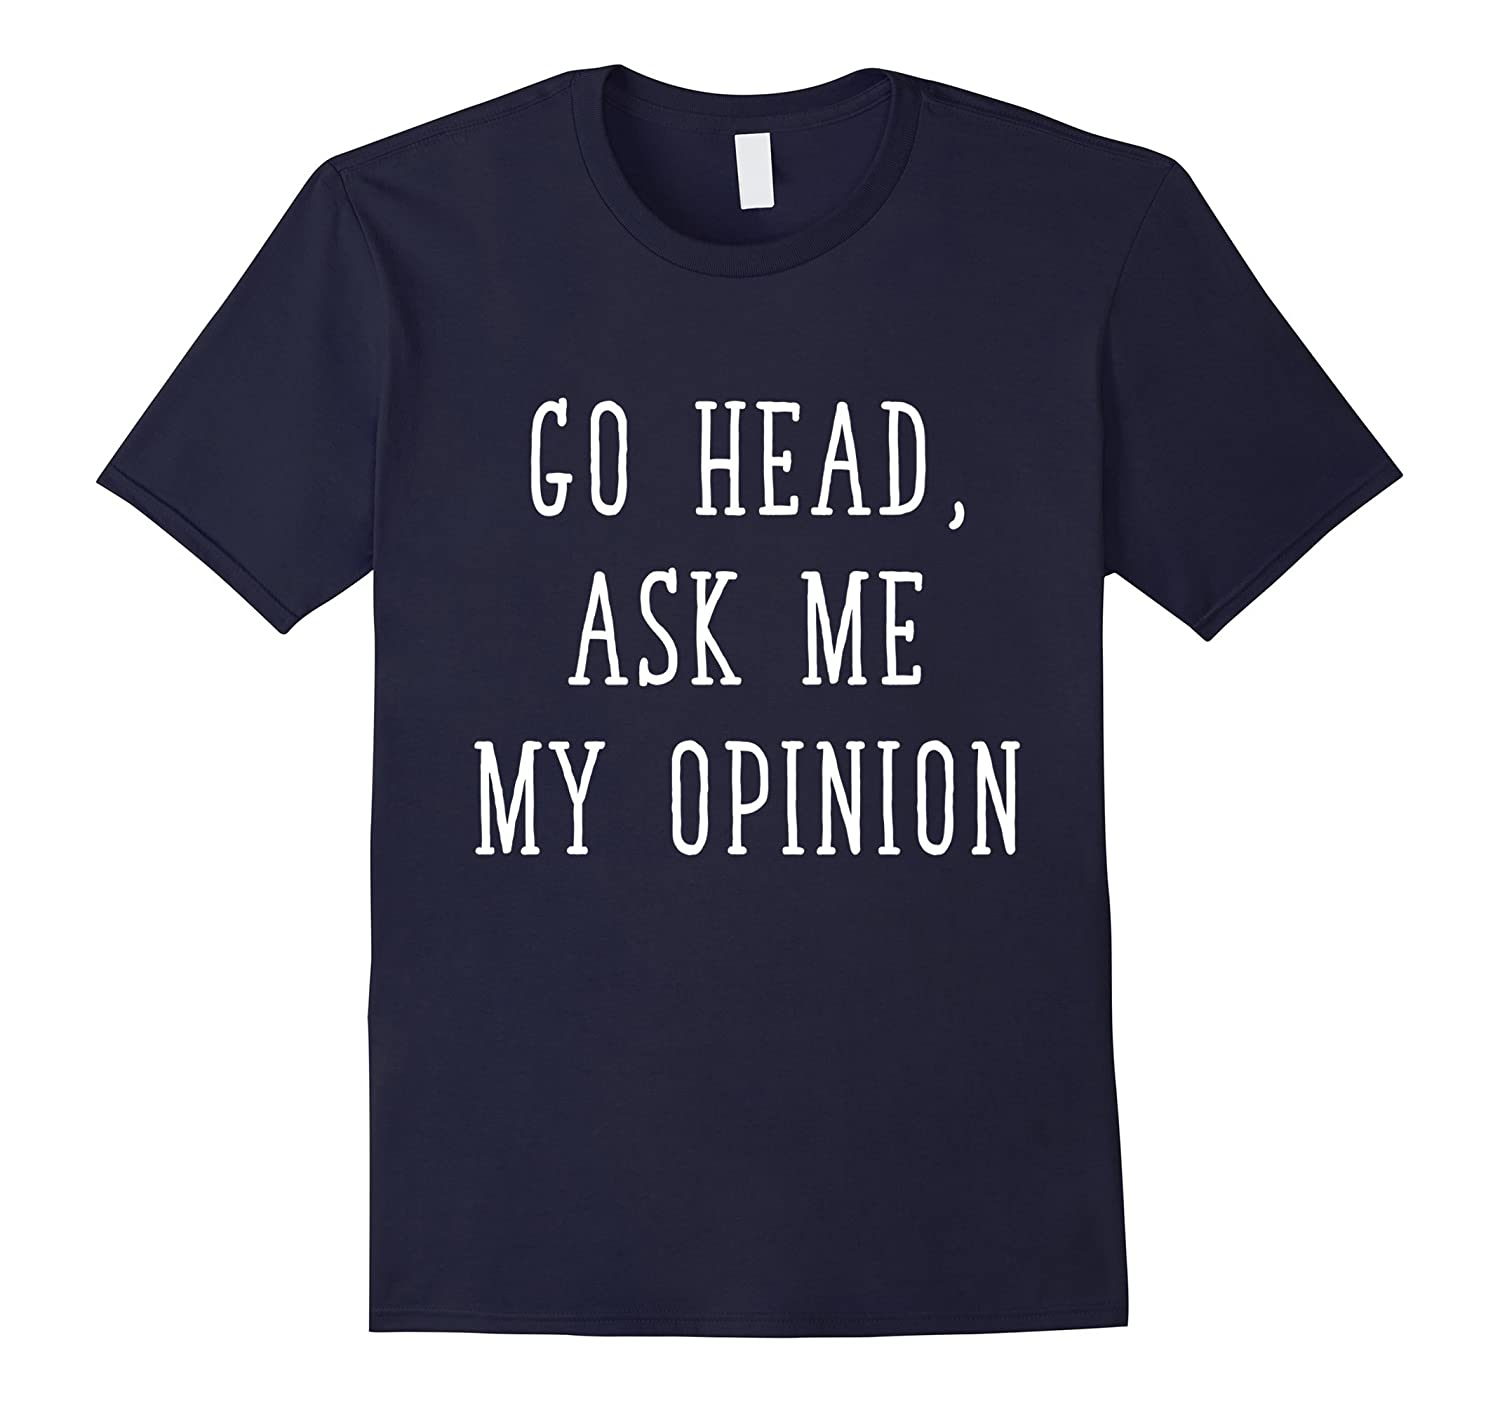 Funny opinion t shirts Go Ahead Ask Me My Opinion T-shirt-TH